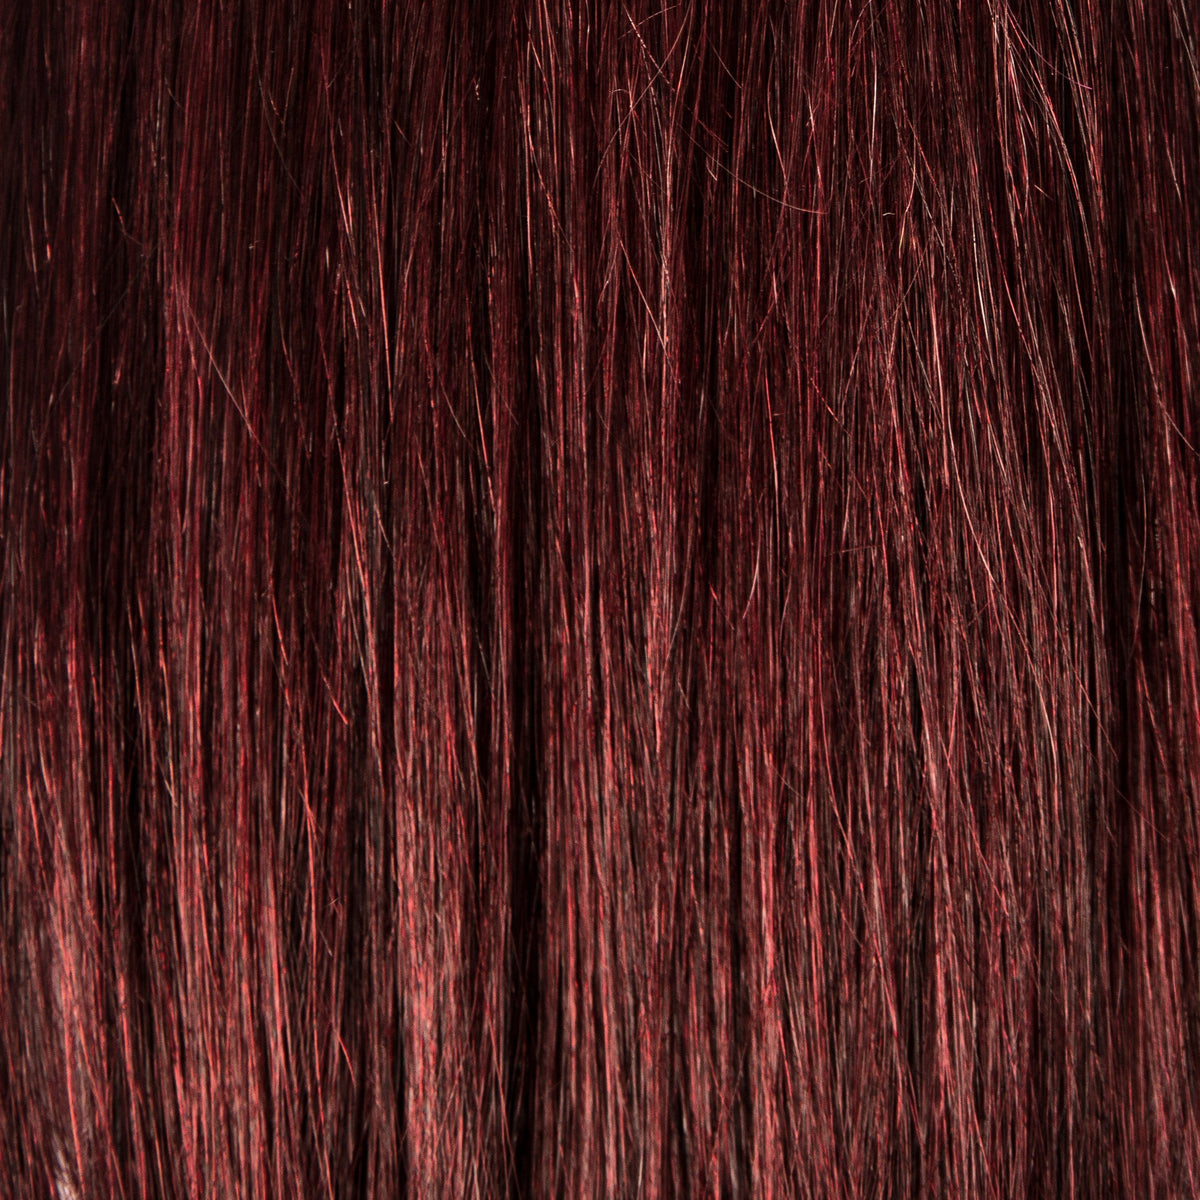 Keratin - Laced Hair Keratin Bond Extensions #99J (Red Red Wine)